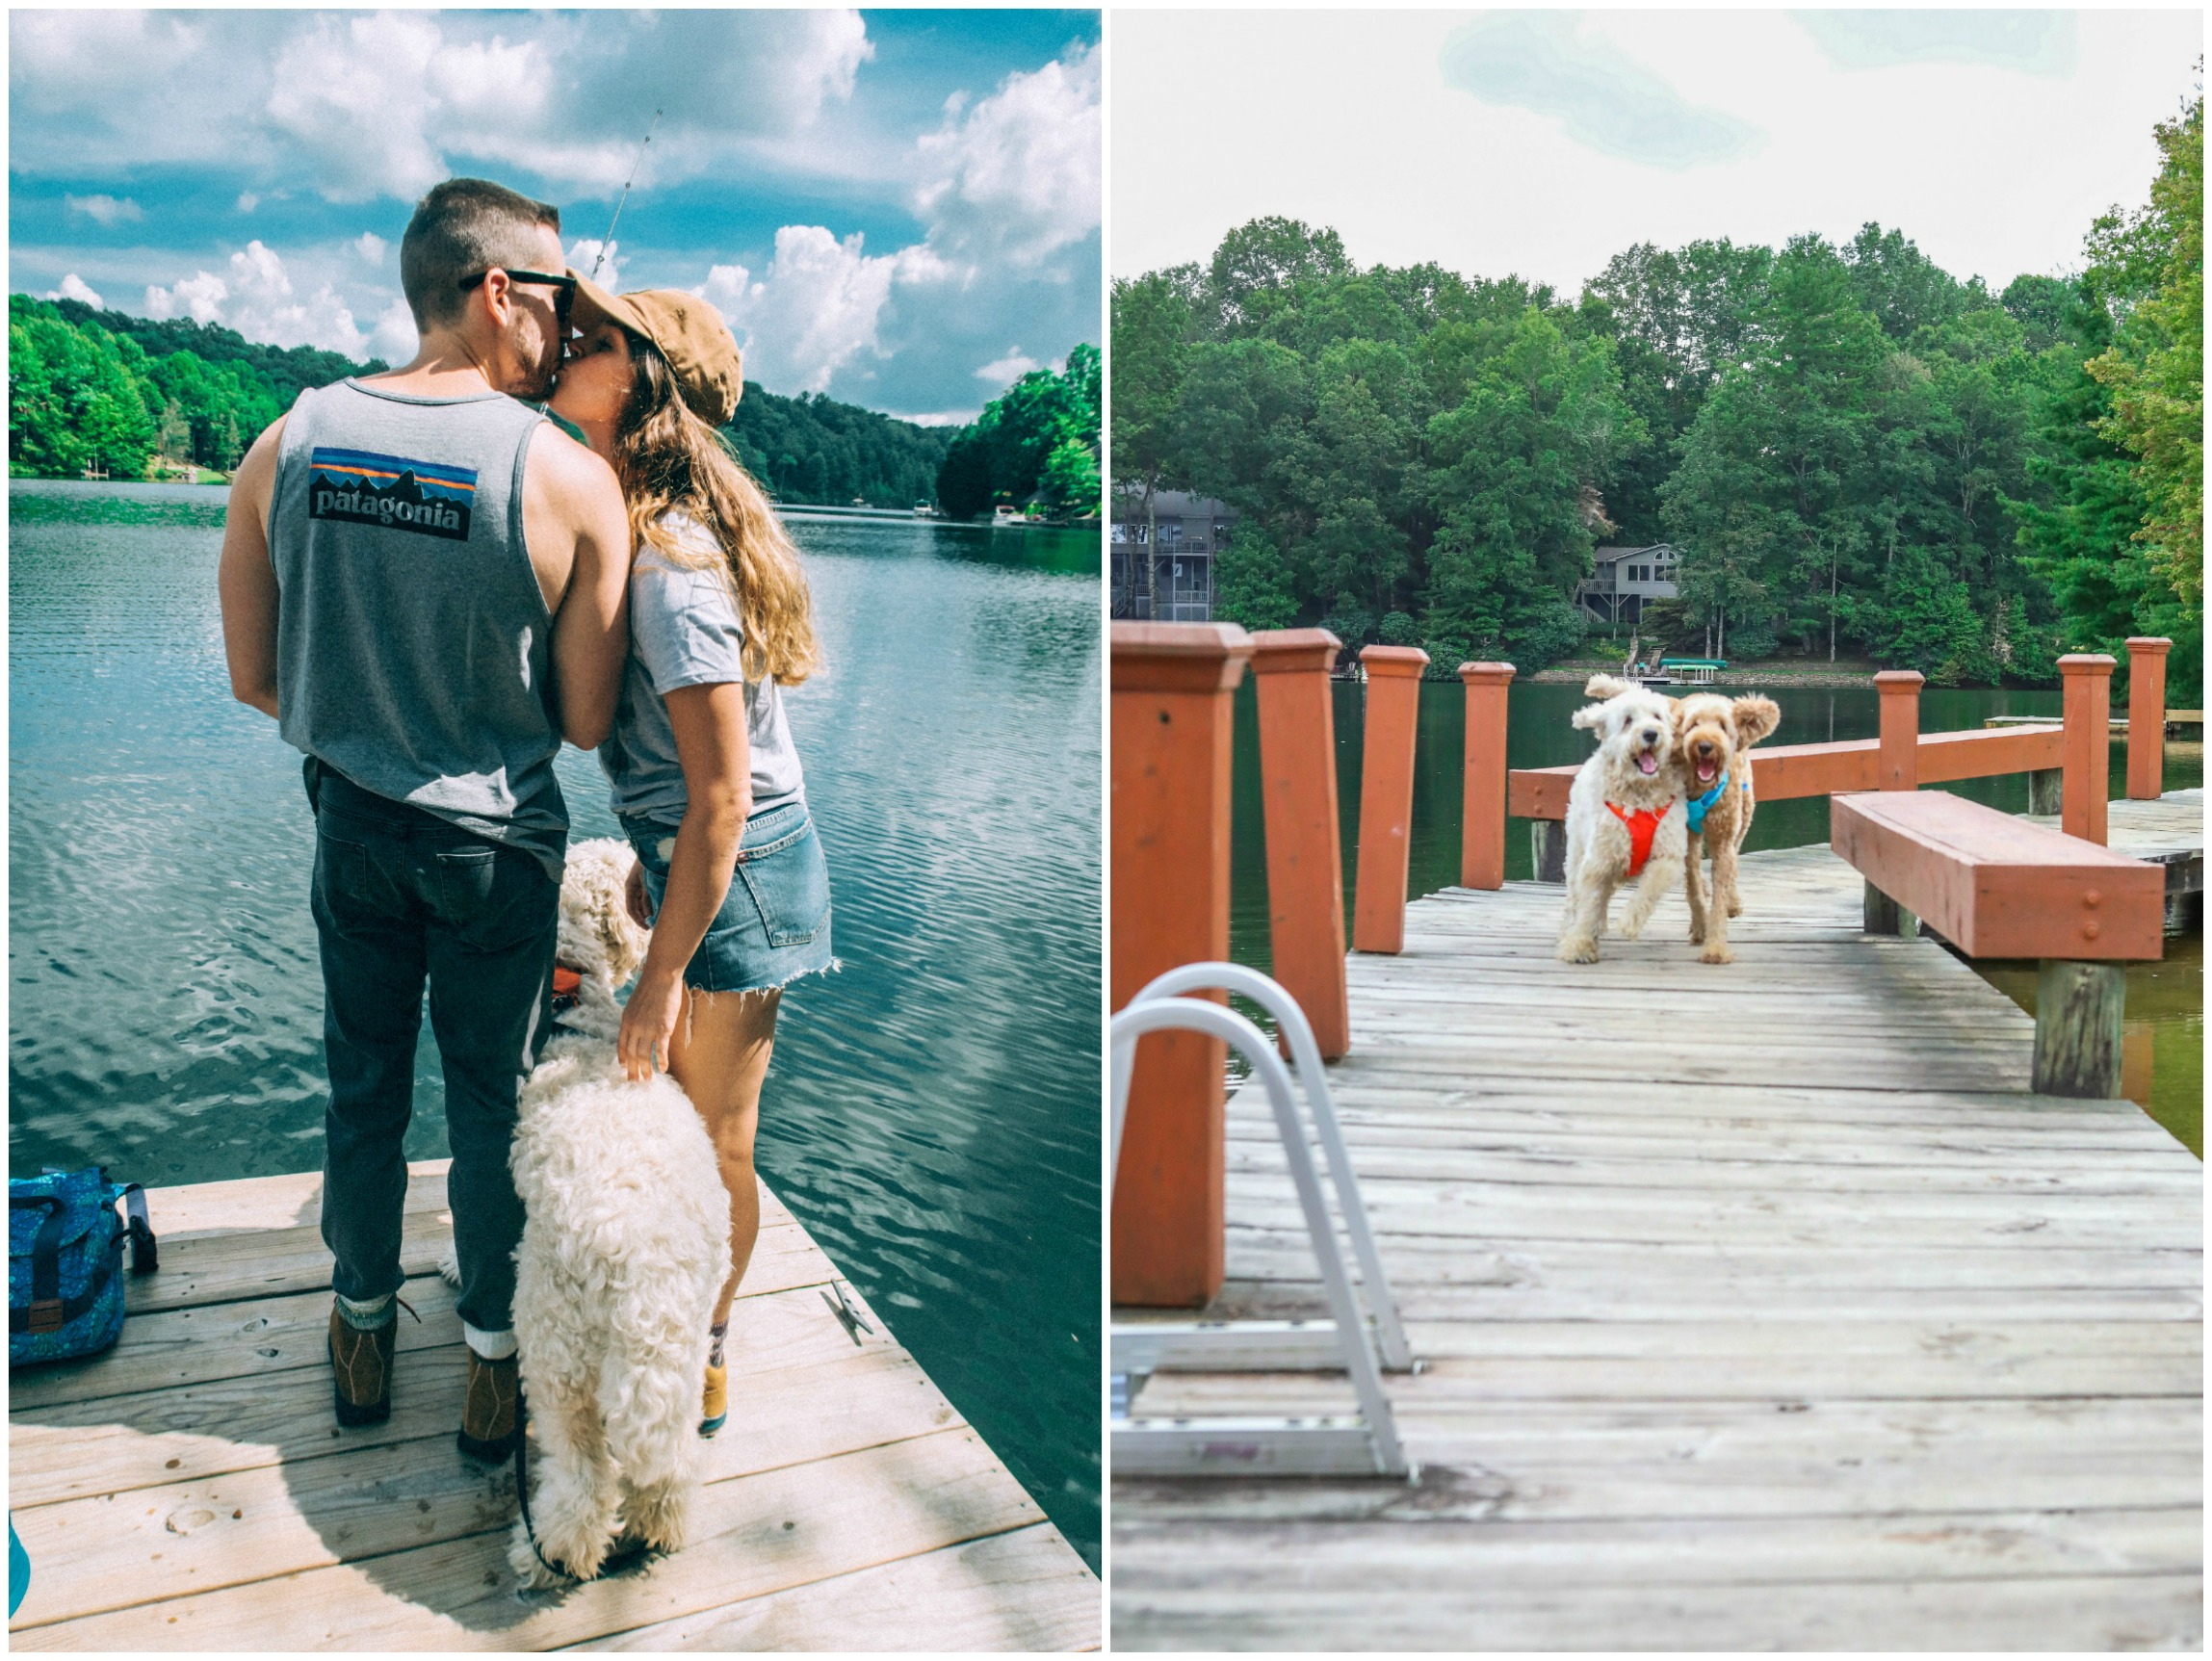 couples hiking, dogs, ruffwear, lake, mountain trip, hike, camp